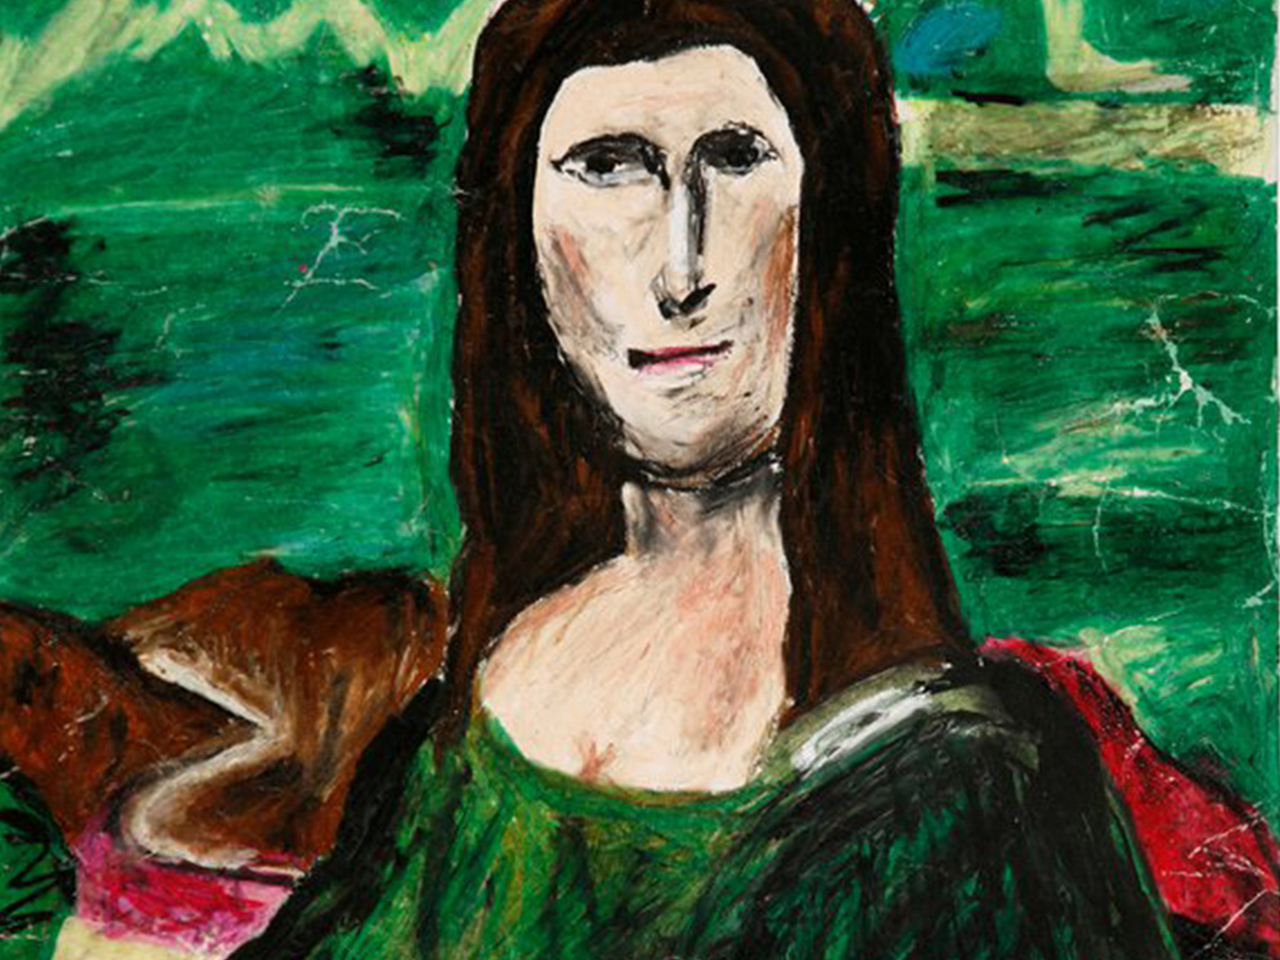 Museum Of Bad Art Showcases Worst Works In The World